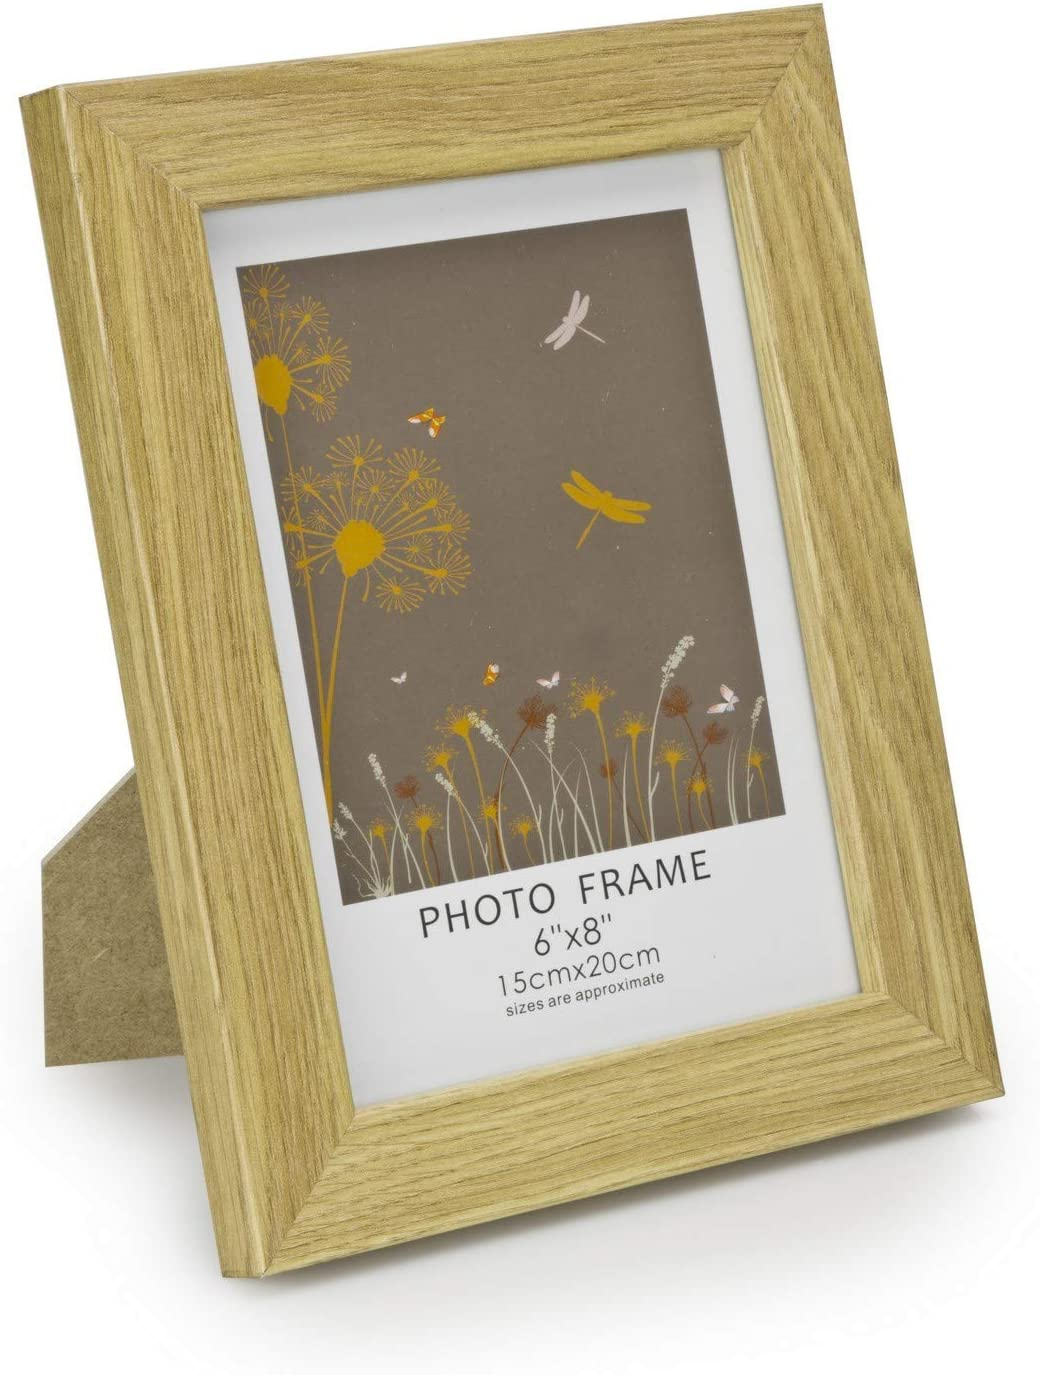 Wood // A4 Picture Frames /& Wall Art Home Furnishings. to beautify your home DiscountSeller Wood Effect Somerset Frame Picture Frames